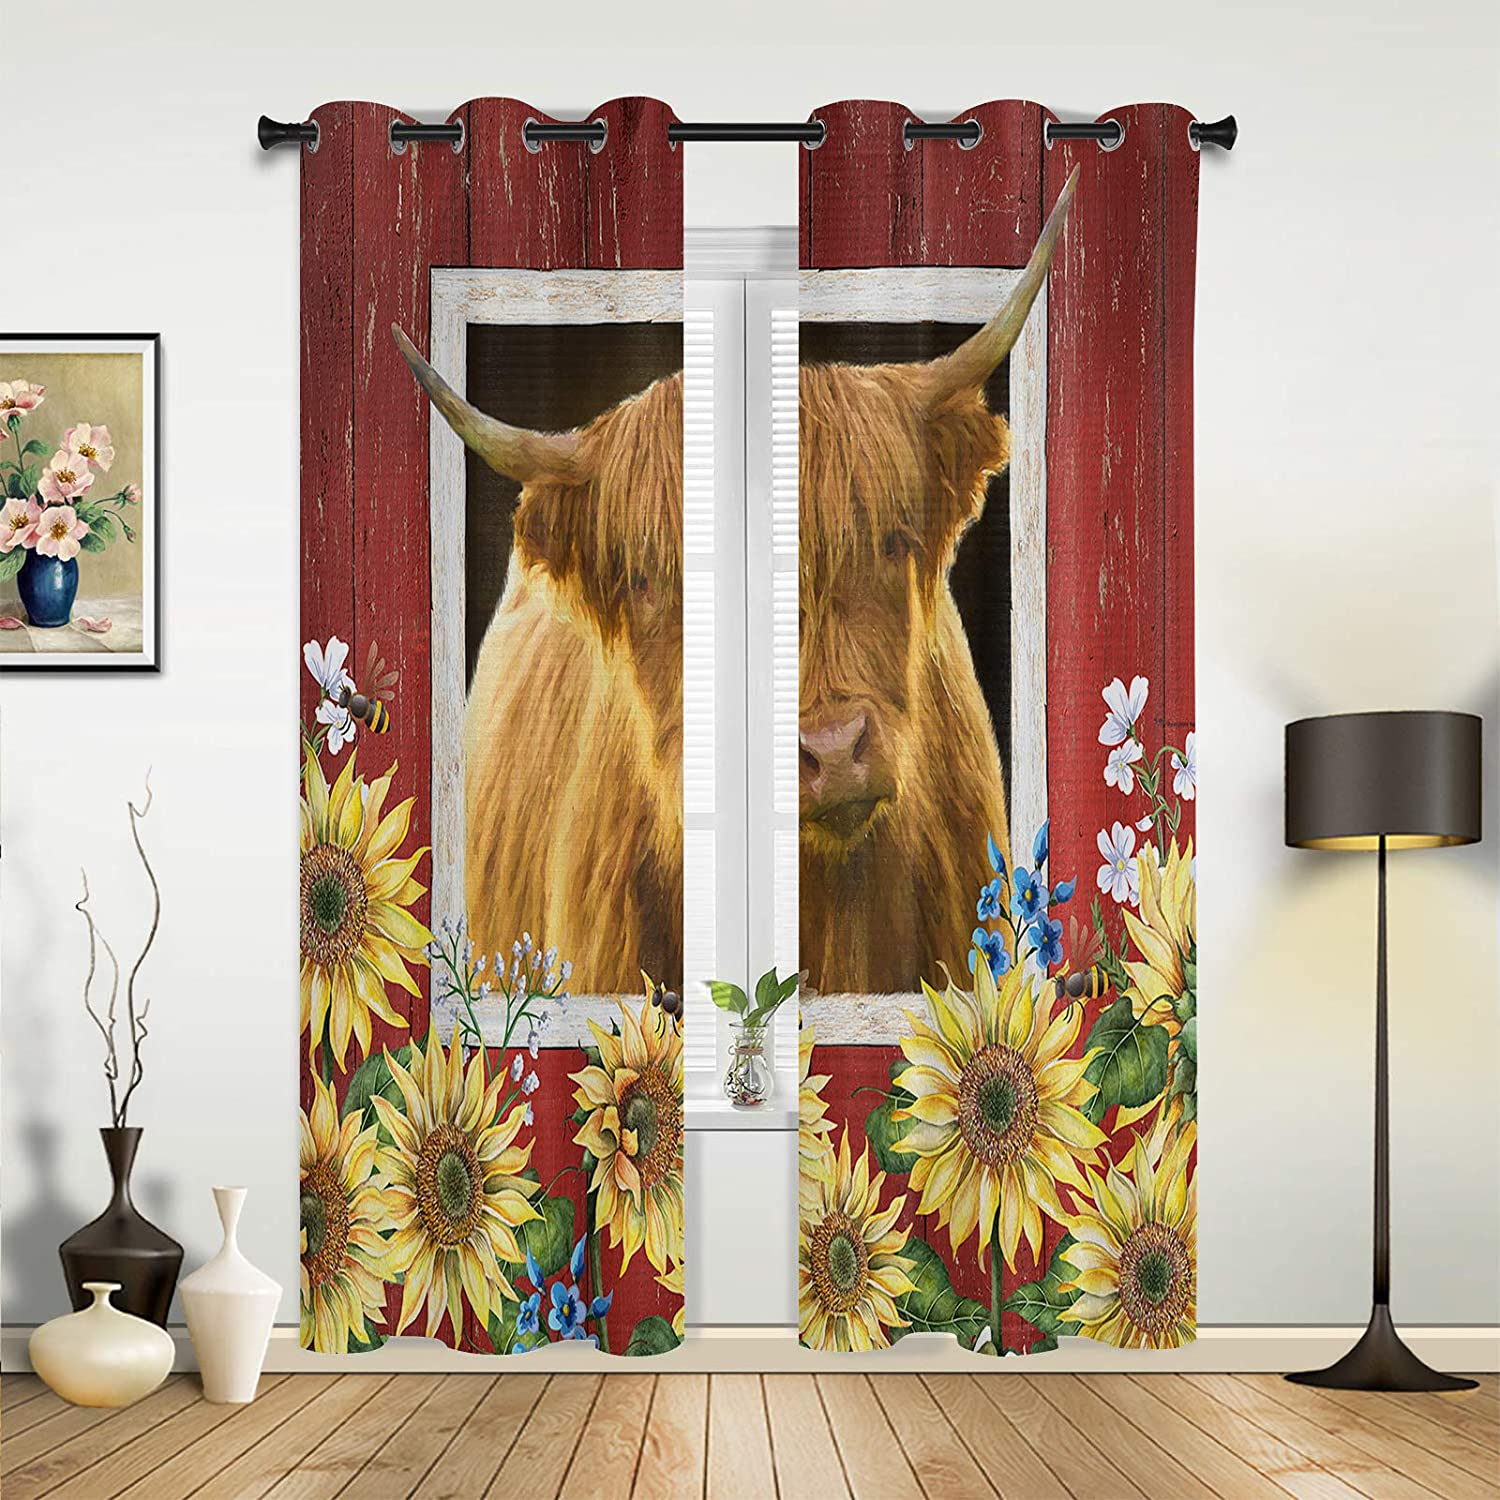 Window Max 40% OFF Curtains Drapes Panels Farm Sunflower Highland Cattle and shop